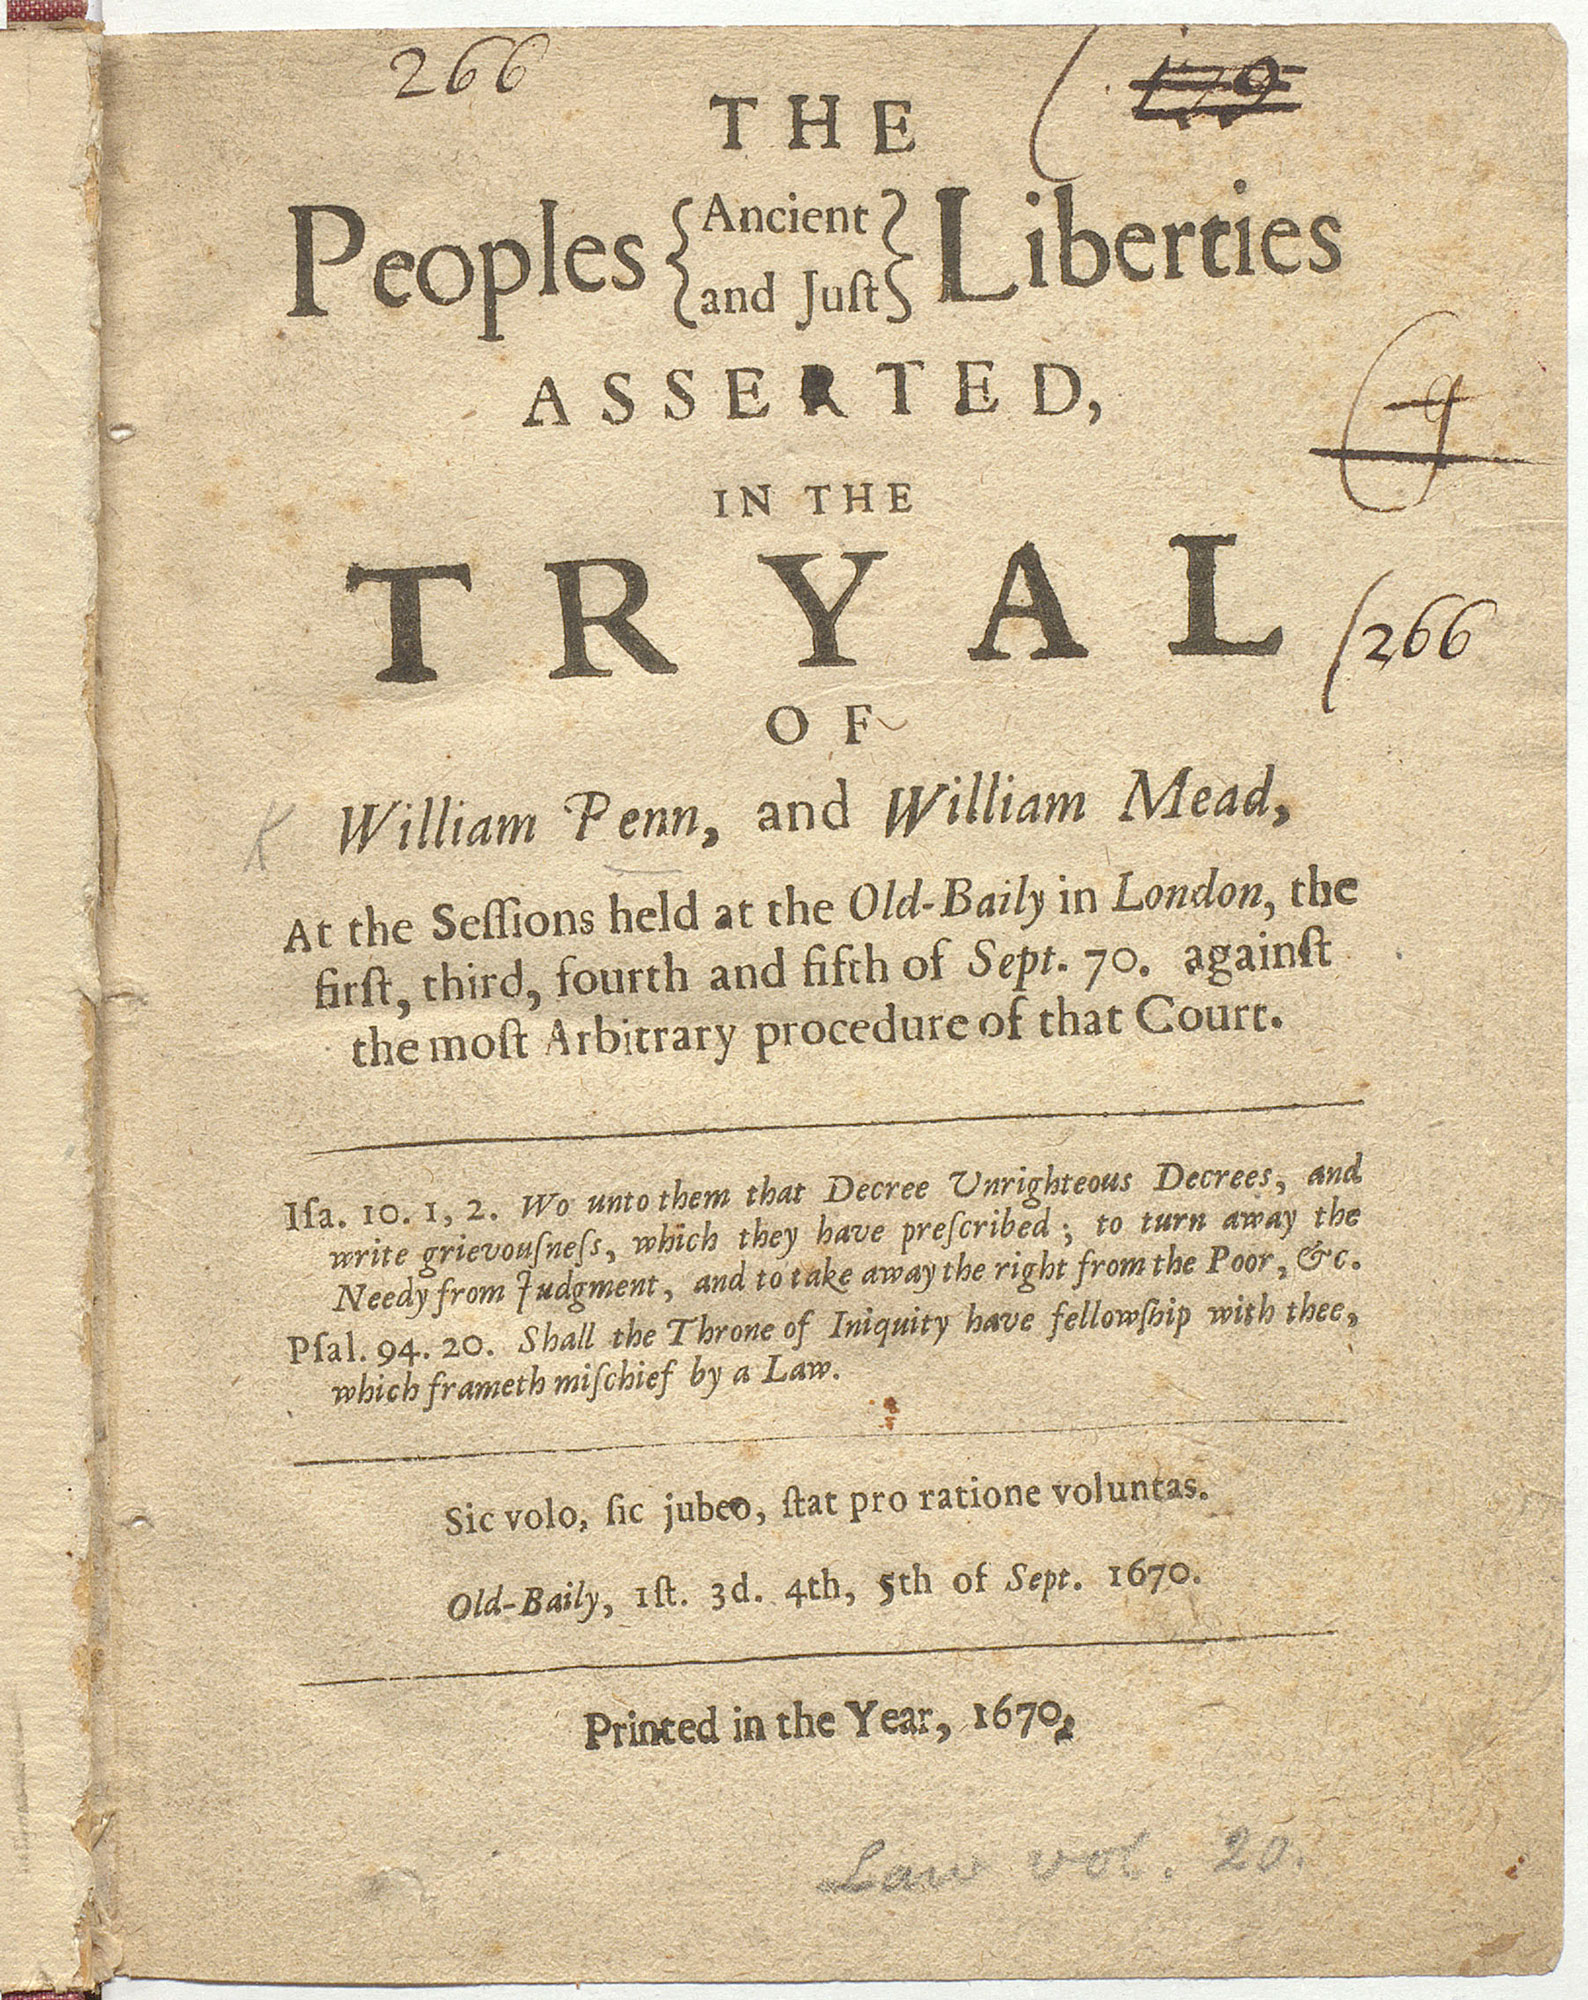 The Peoples Ancient and Just Liberties asserted in the trial of William Penn and William Mead